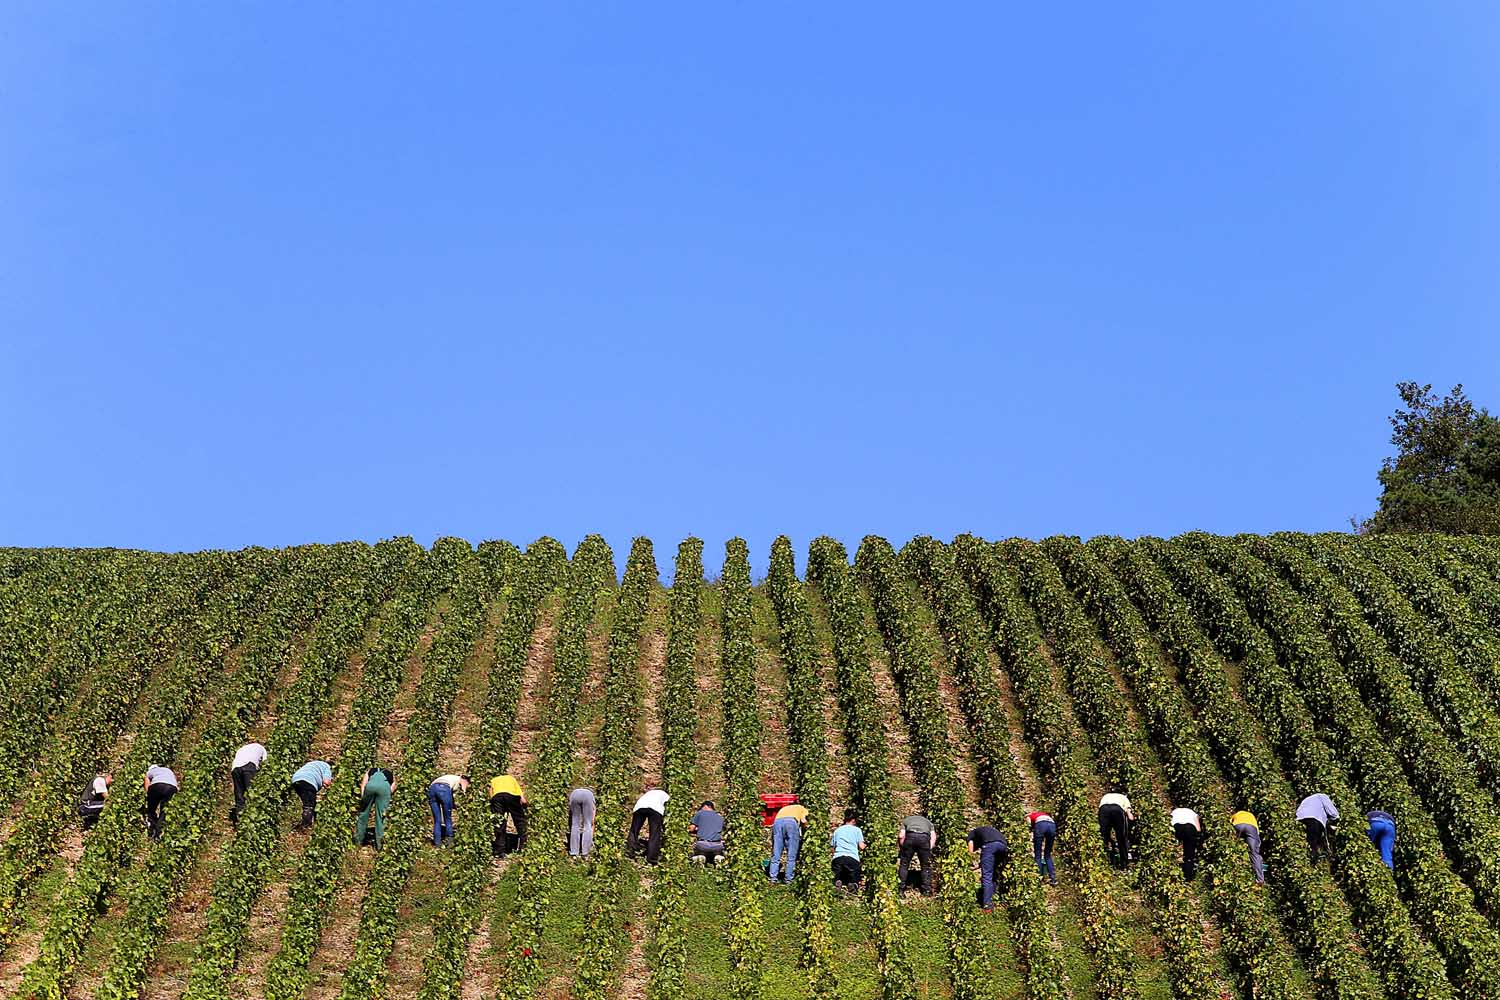 Sept. 24, 2013. People take part in the grape harvest for the Champagne house Koza-Janot in Buxeuil, France.